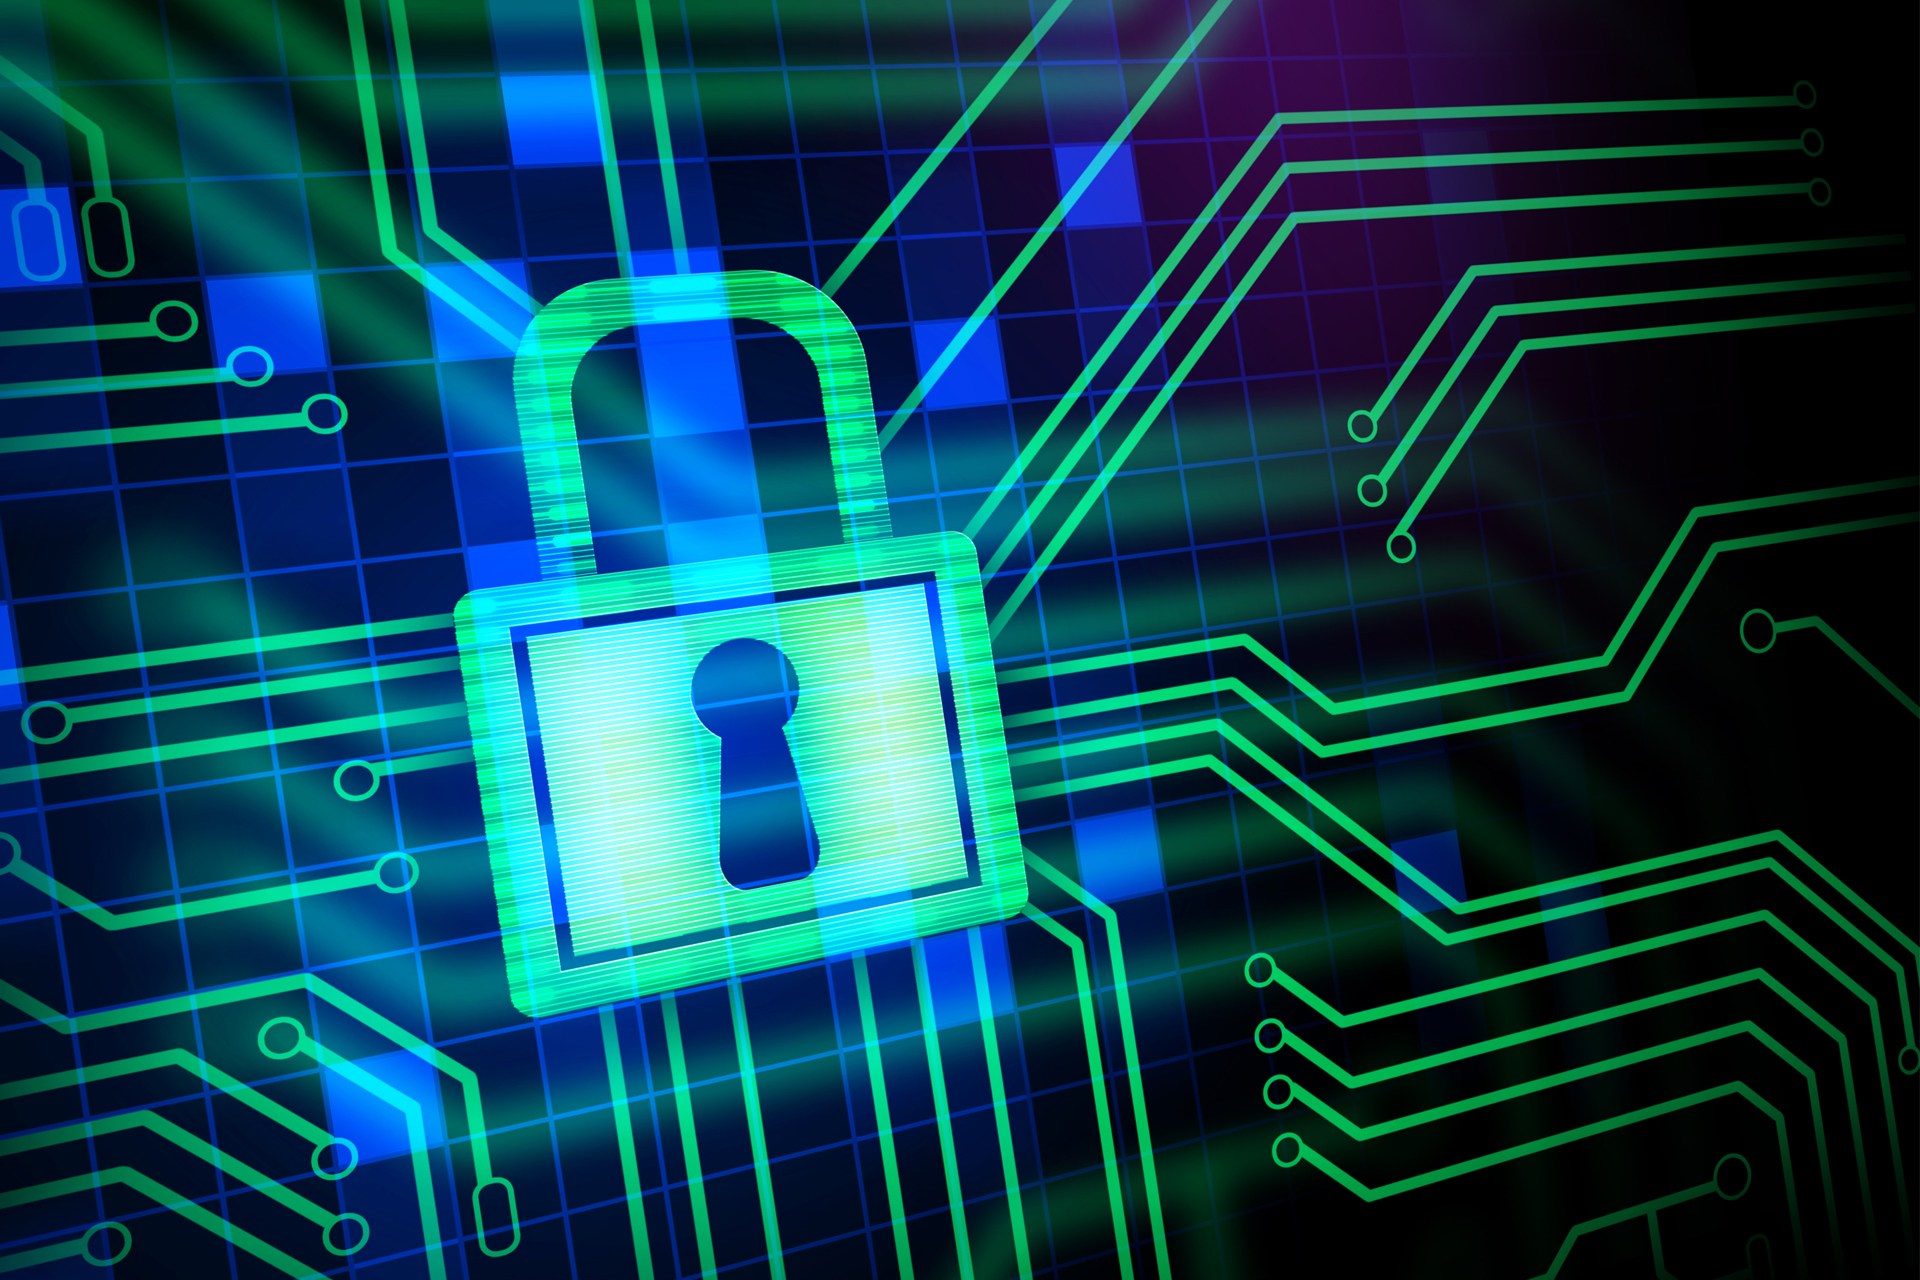 Apps which fend our privacy from unauthorized user